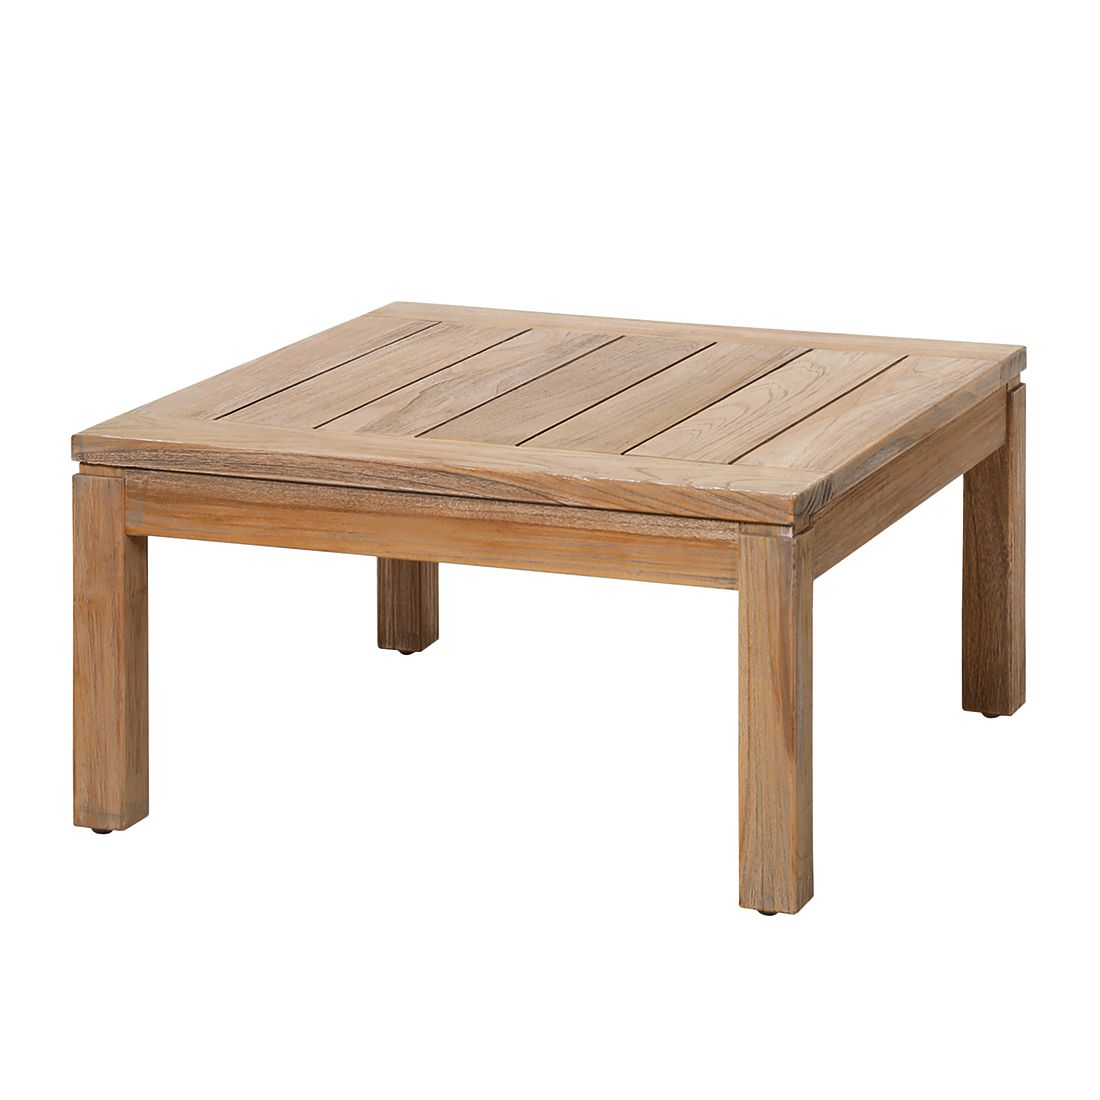 Home 24 - Table de jardin moretti ii - teck massif gris, best freizeitmöbel